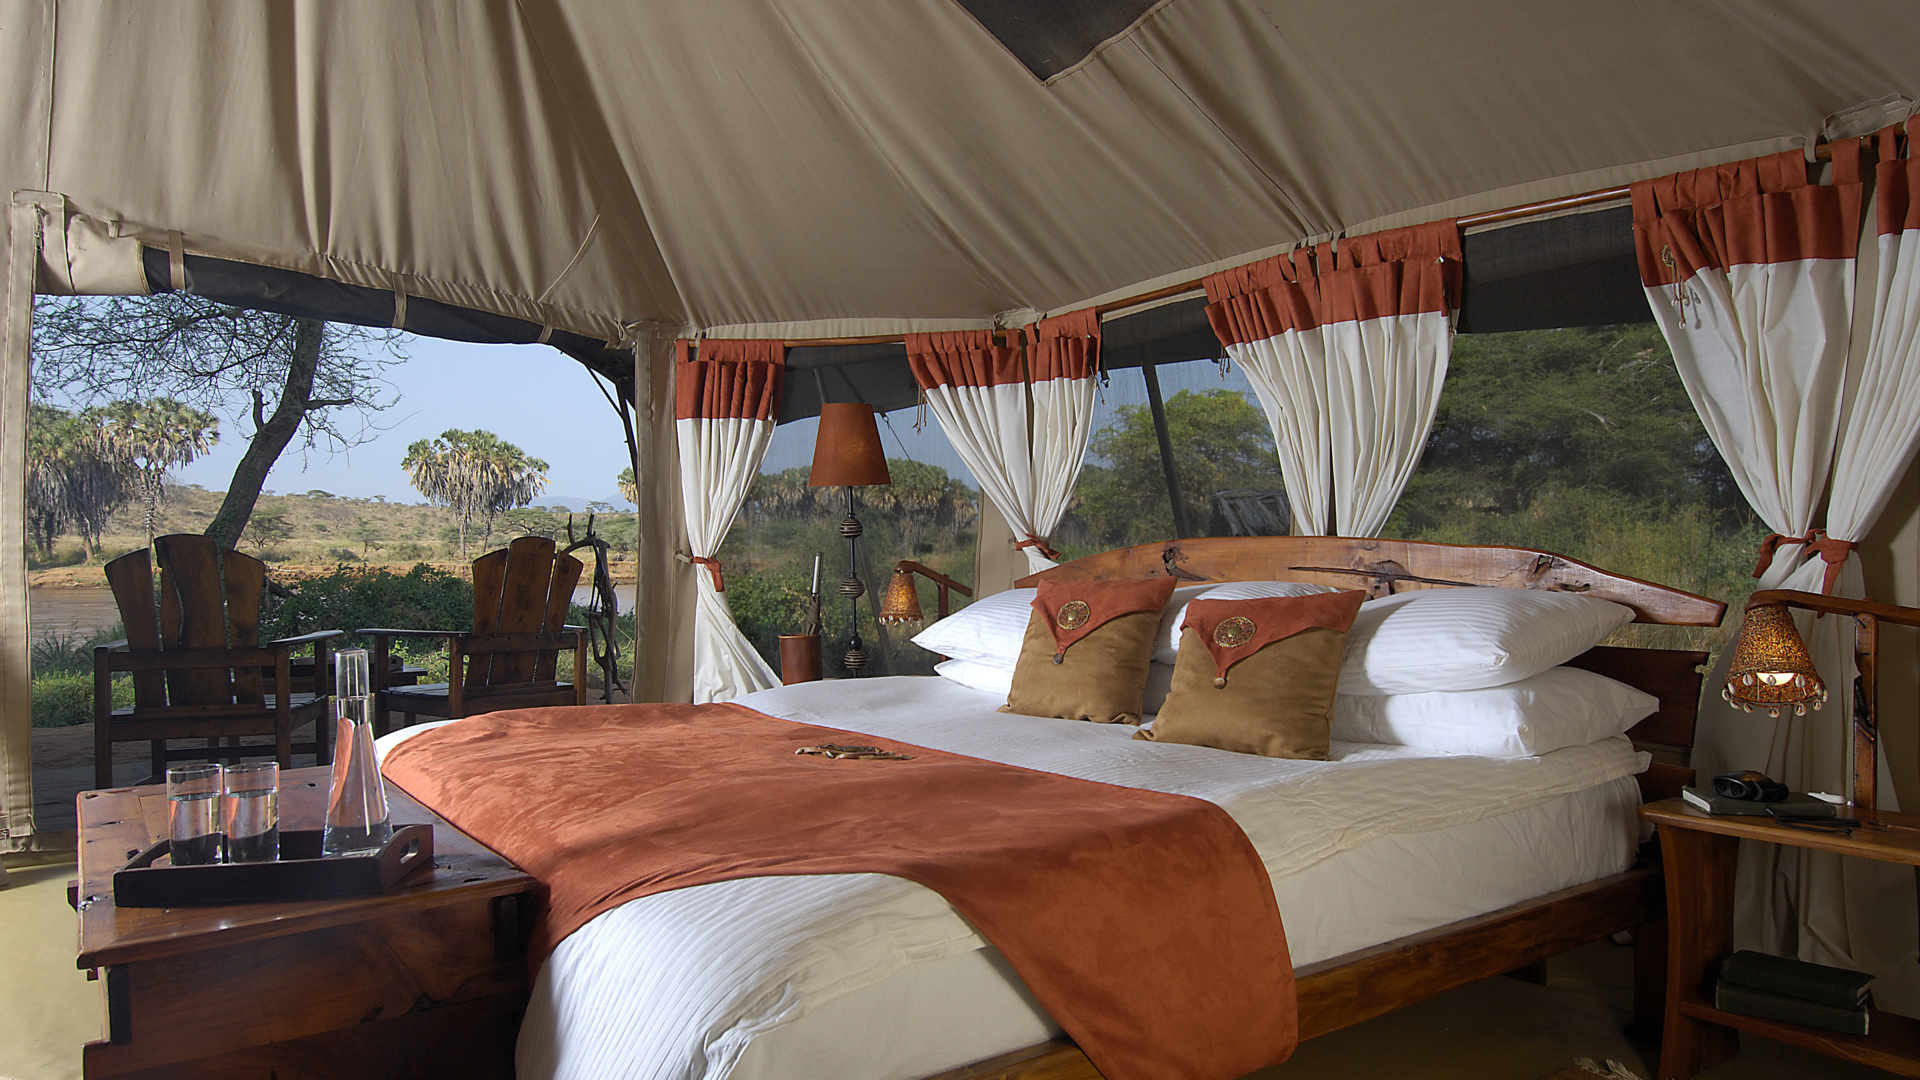 Elephant Bedroom Camp » Matoke